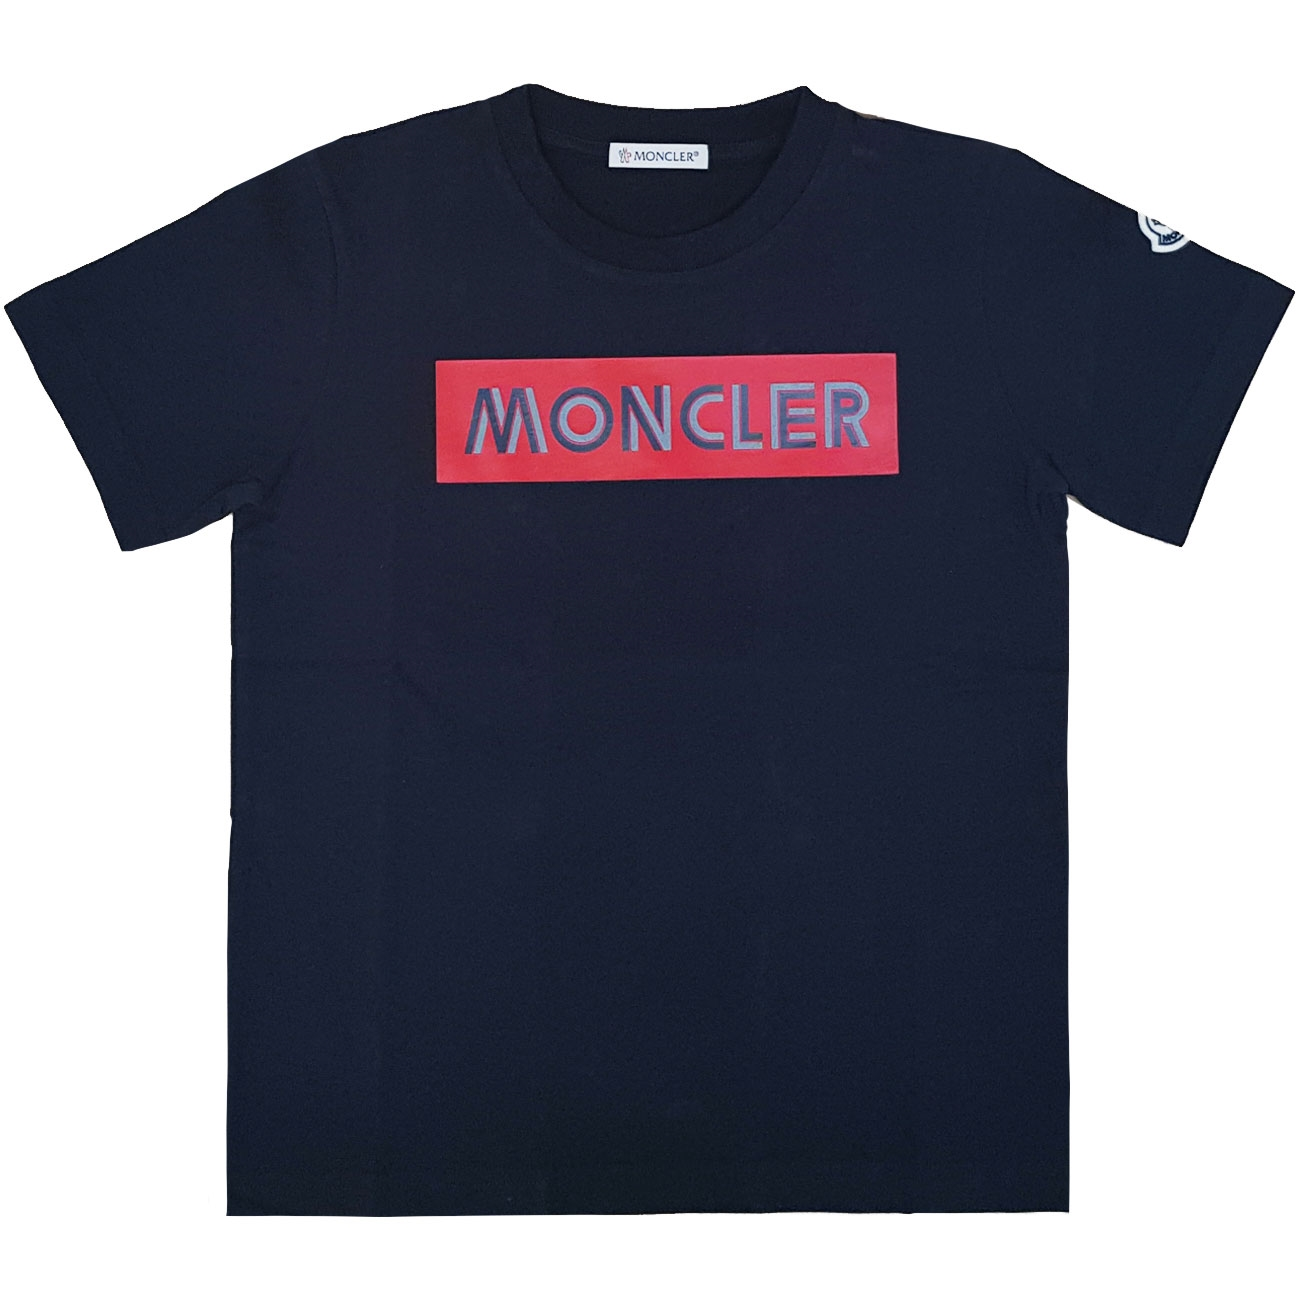 Moncler-maglia-t-shirt-tee-blue-navy-red-roed